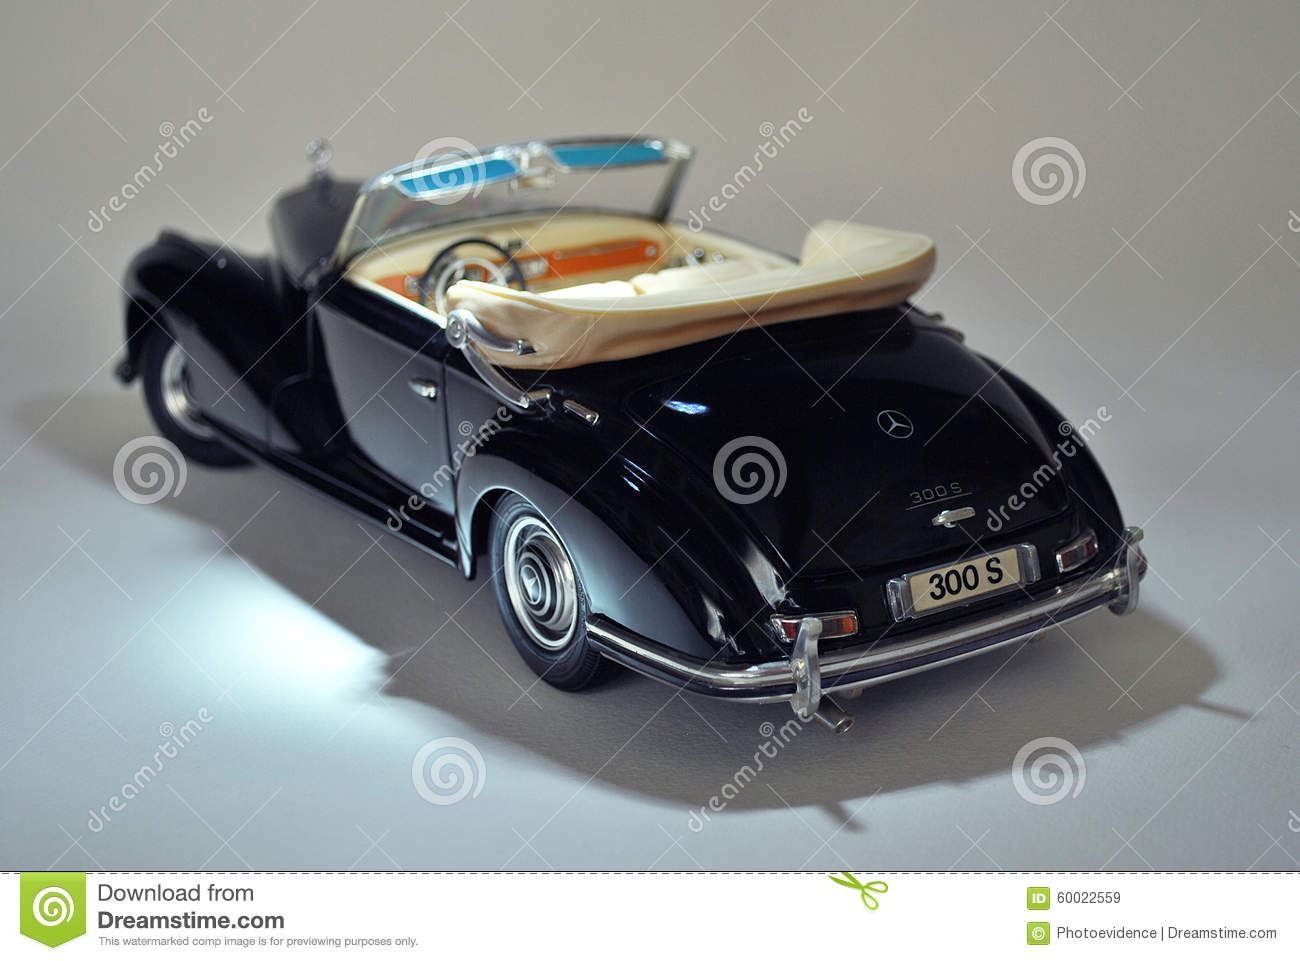 Toy car model mercedes benz 300s 1955 editorial stock for Mercedes benz toy car models